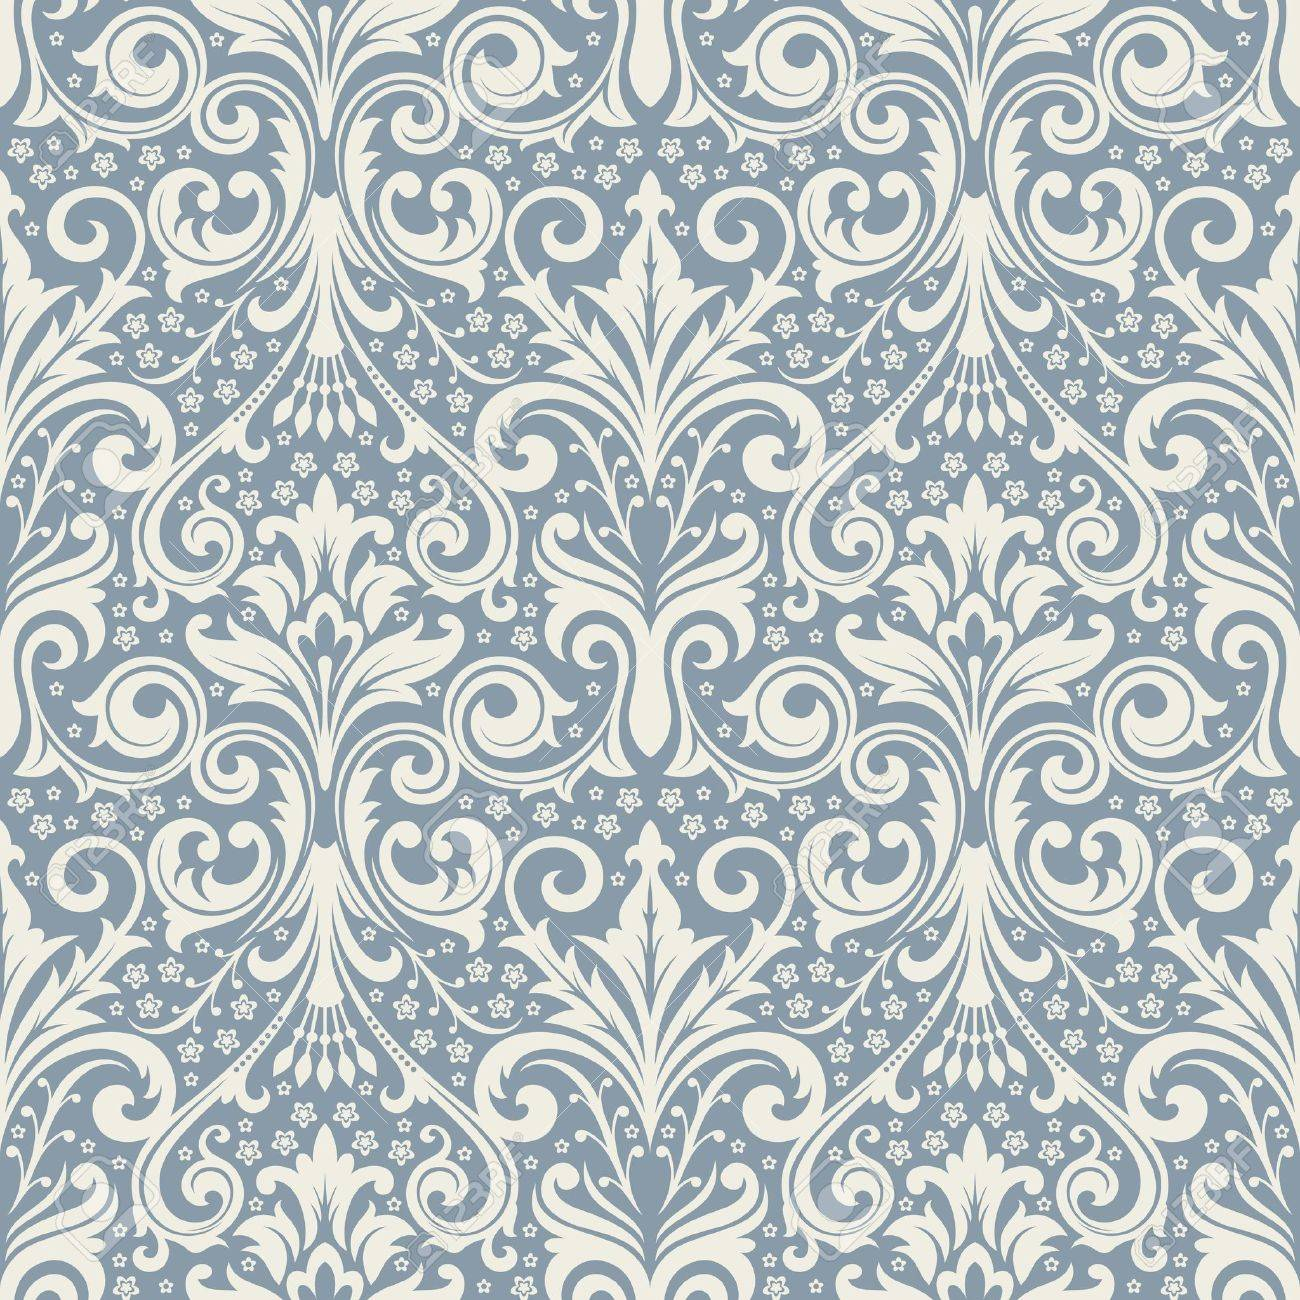 Seamless background from a floral ornament, Fashionable modern wallpaper or textile - 7087812